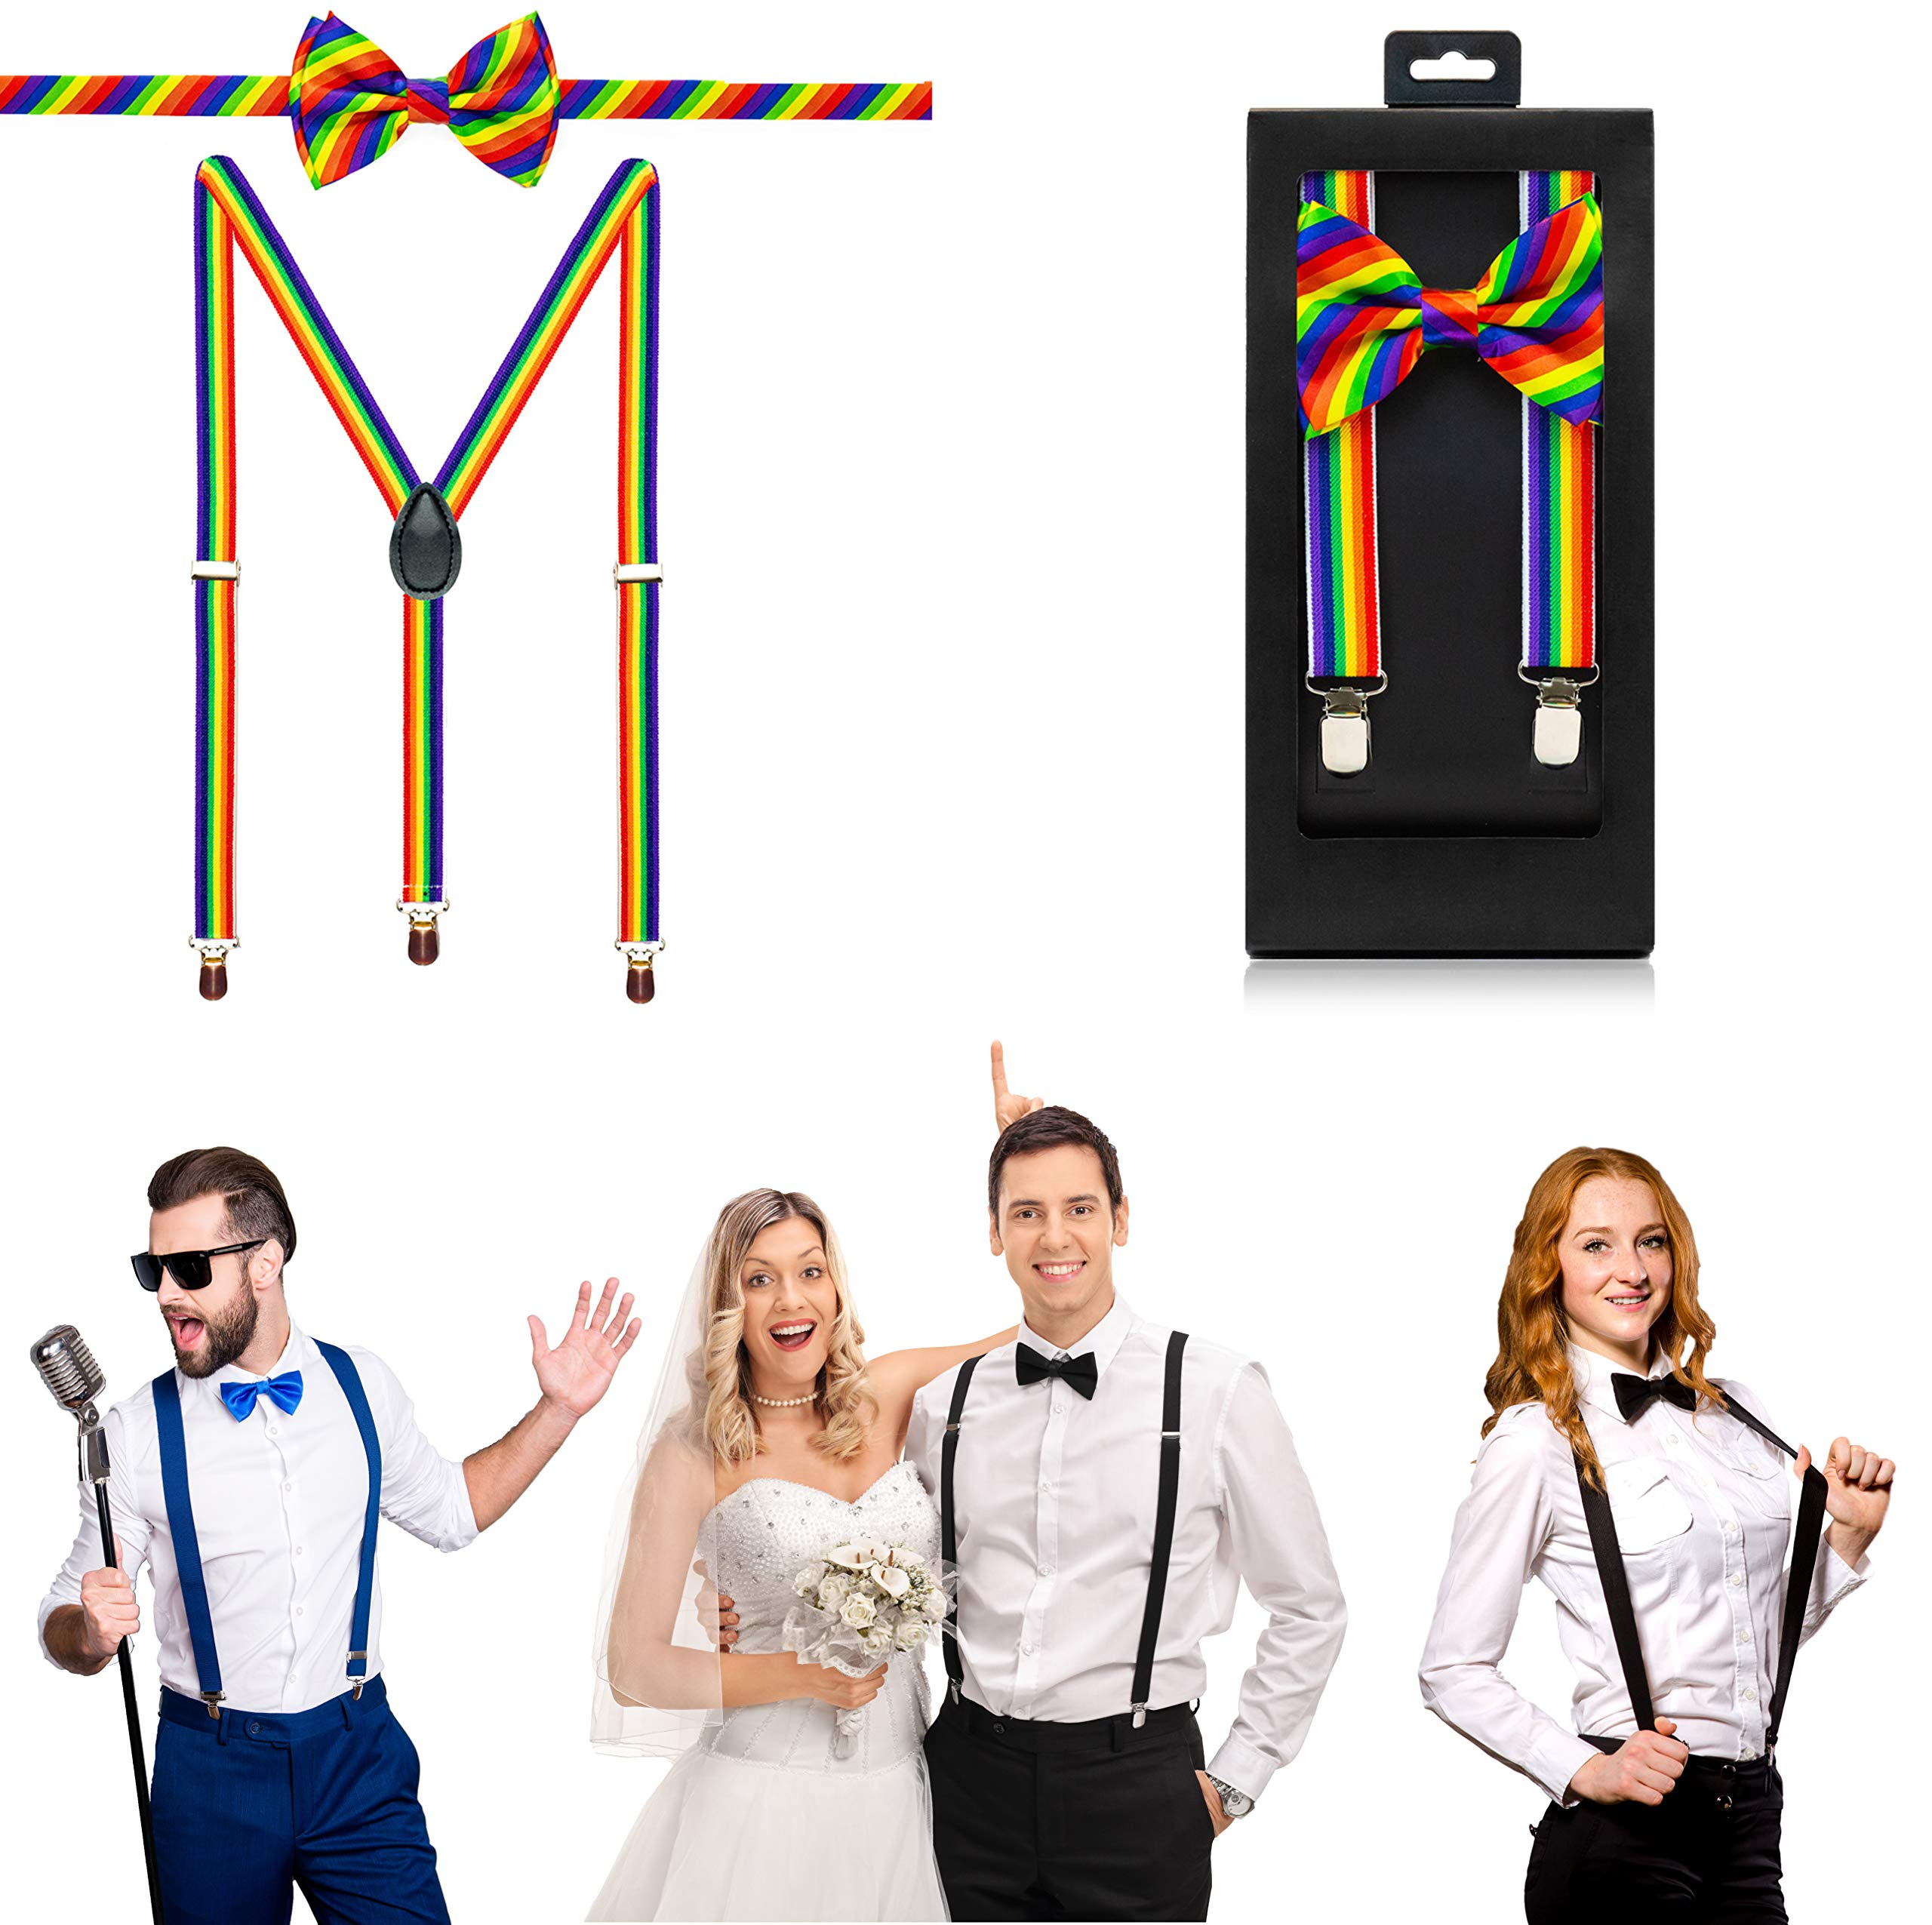 McWay Bowtie and Suspender Set For Men, Adults | Premium Quality | With Gift Box | Wide And Adjustable | Classy Design (Rainbow)